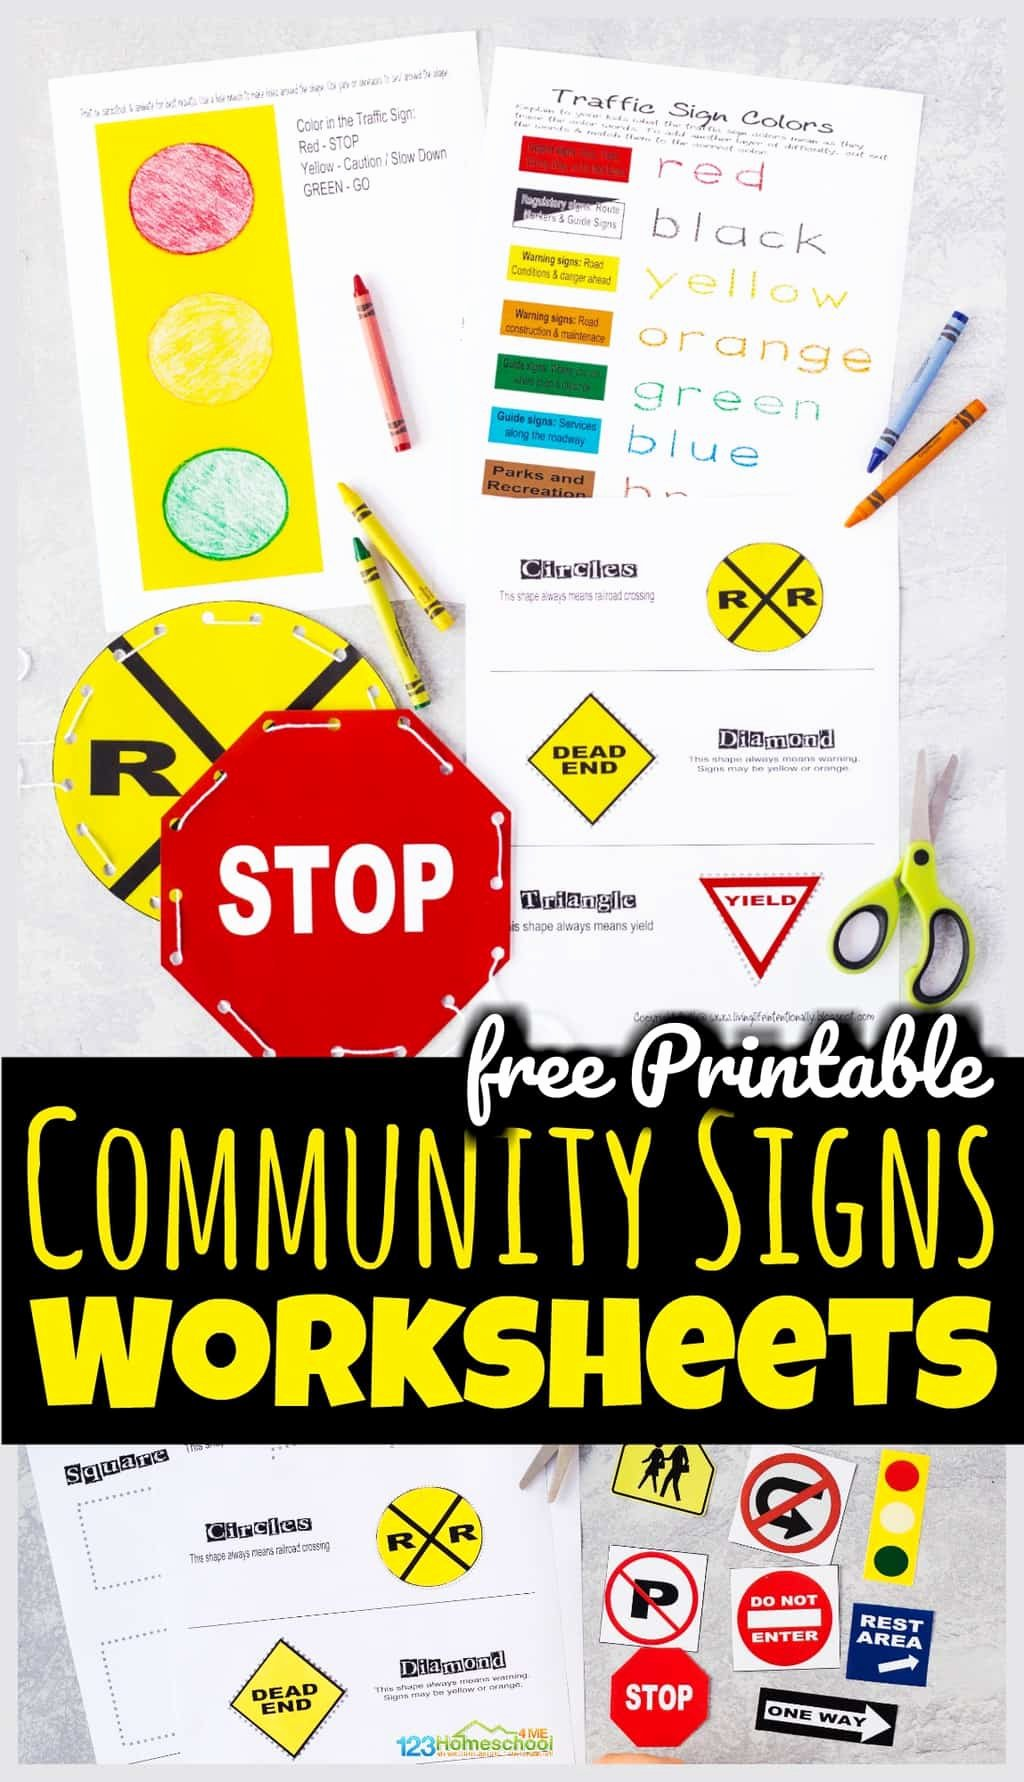 Safety Signs Worksheets for Kindergarten top Free Printable Munity Signs Worksheets